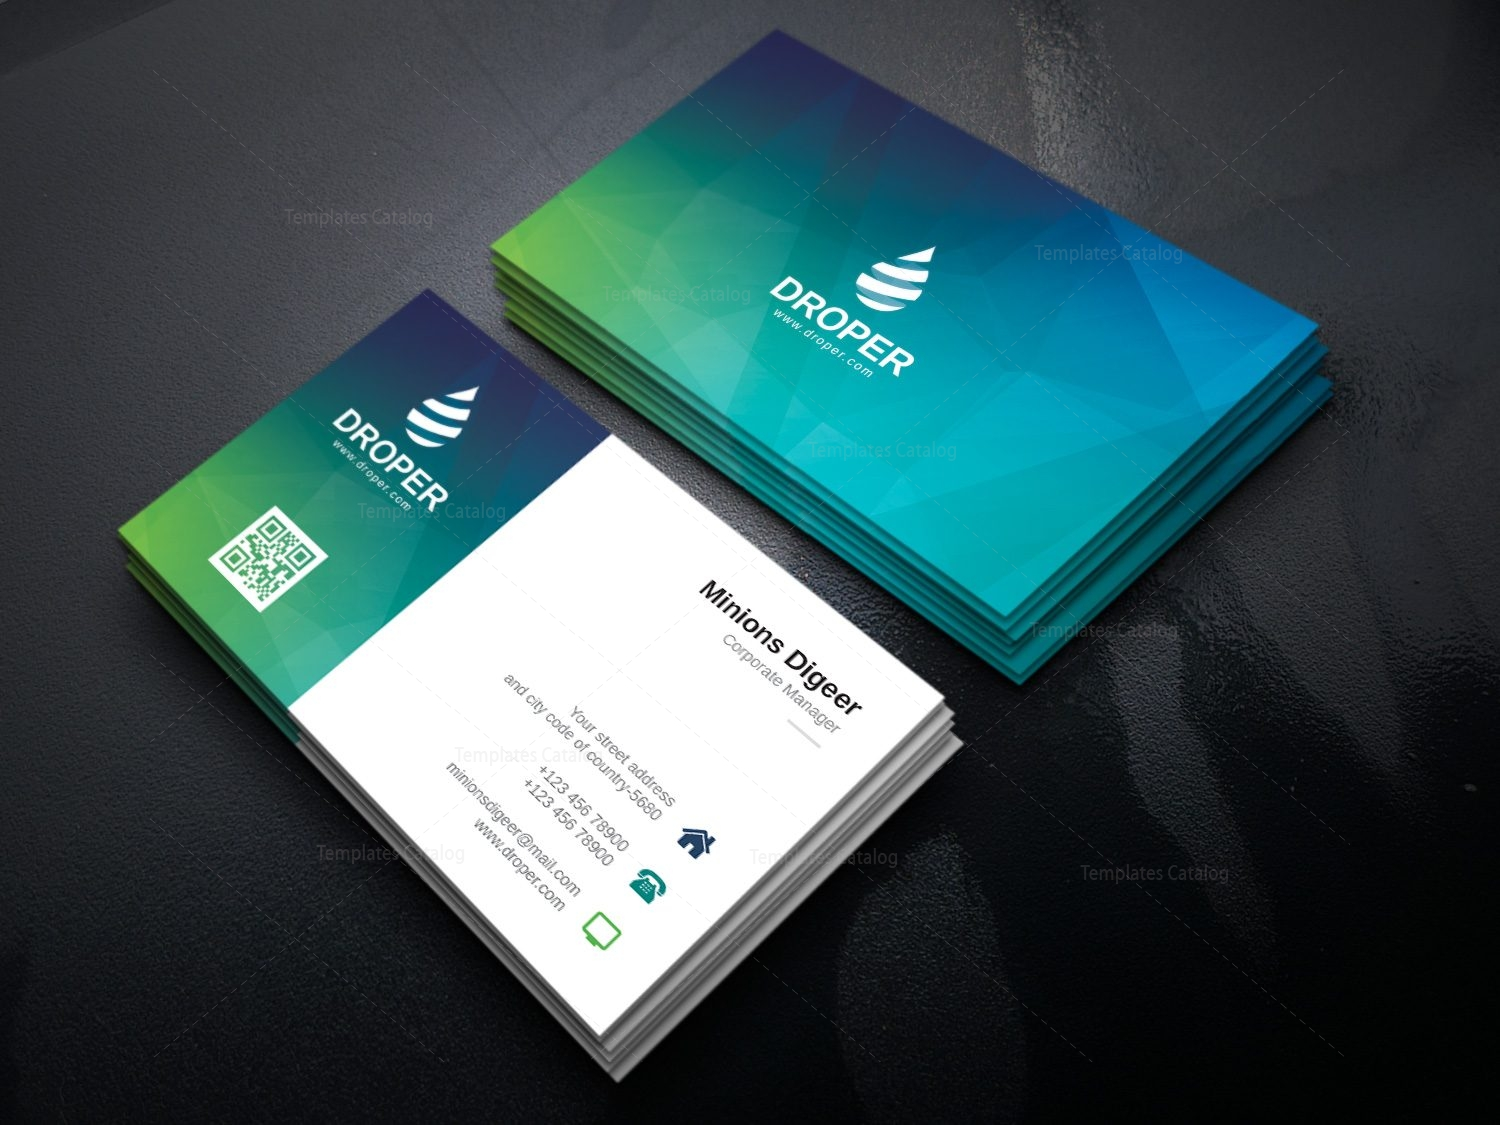 Dolphin modern corporate business card template 000924 template dolphin modern corporate business card template friedricerecipe Gallery